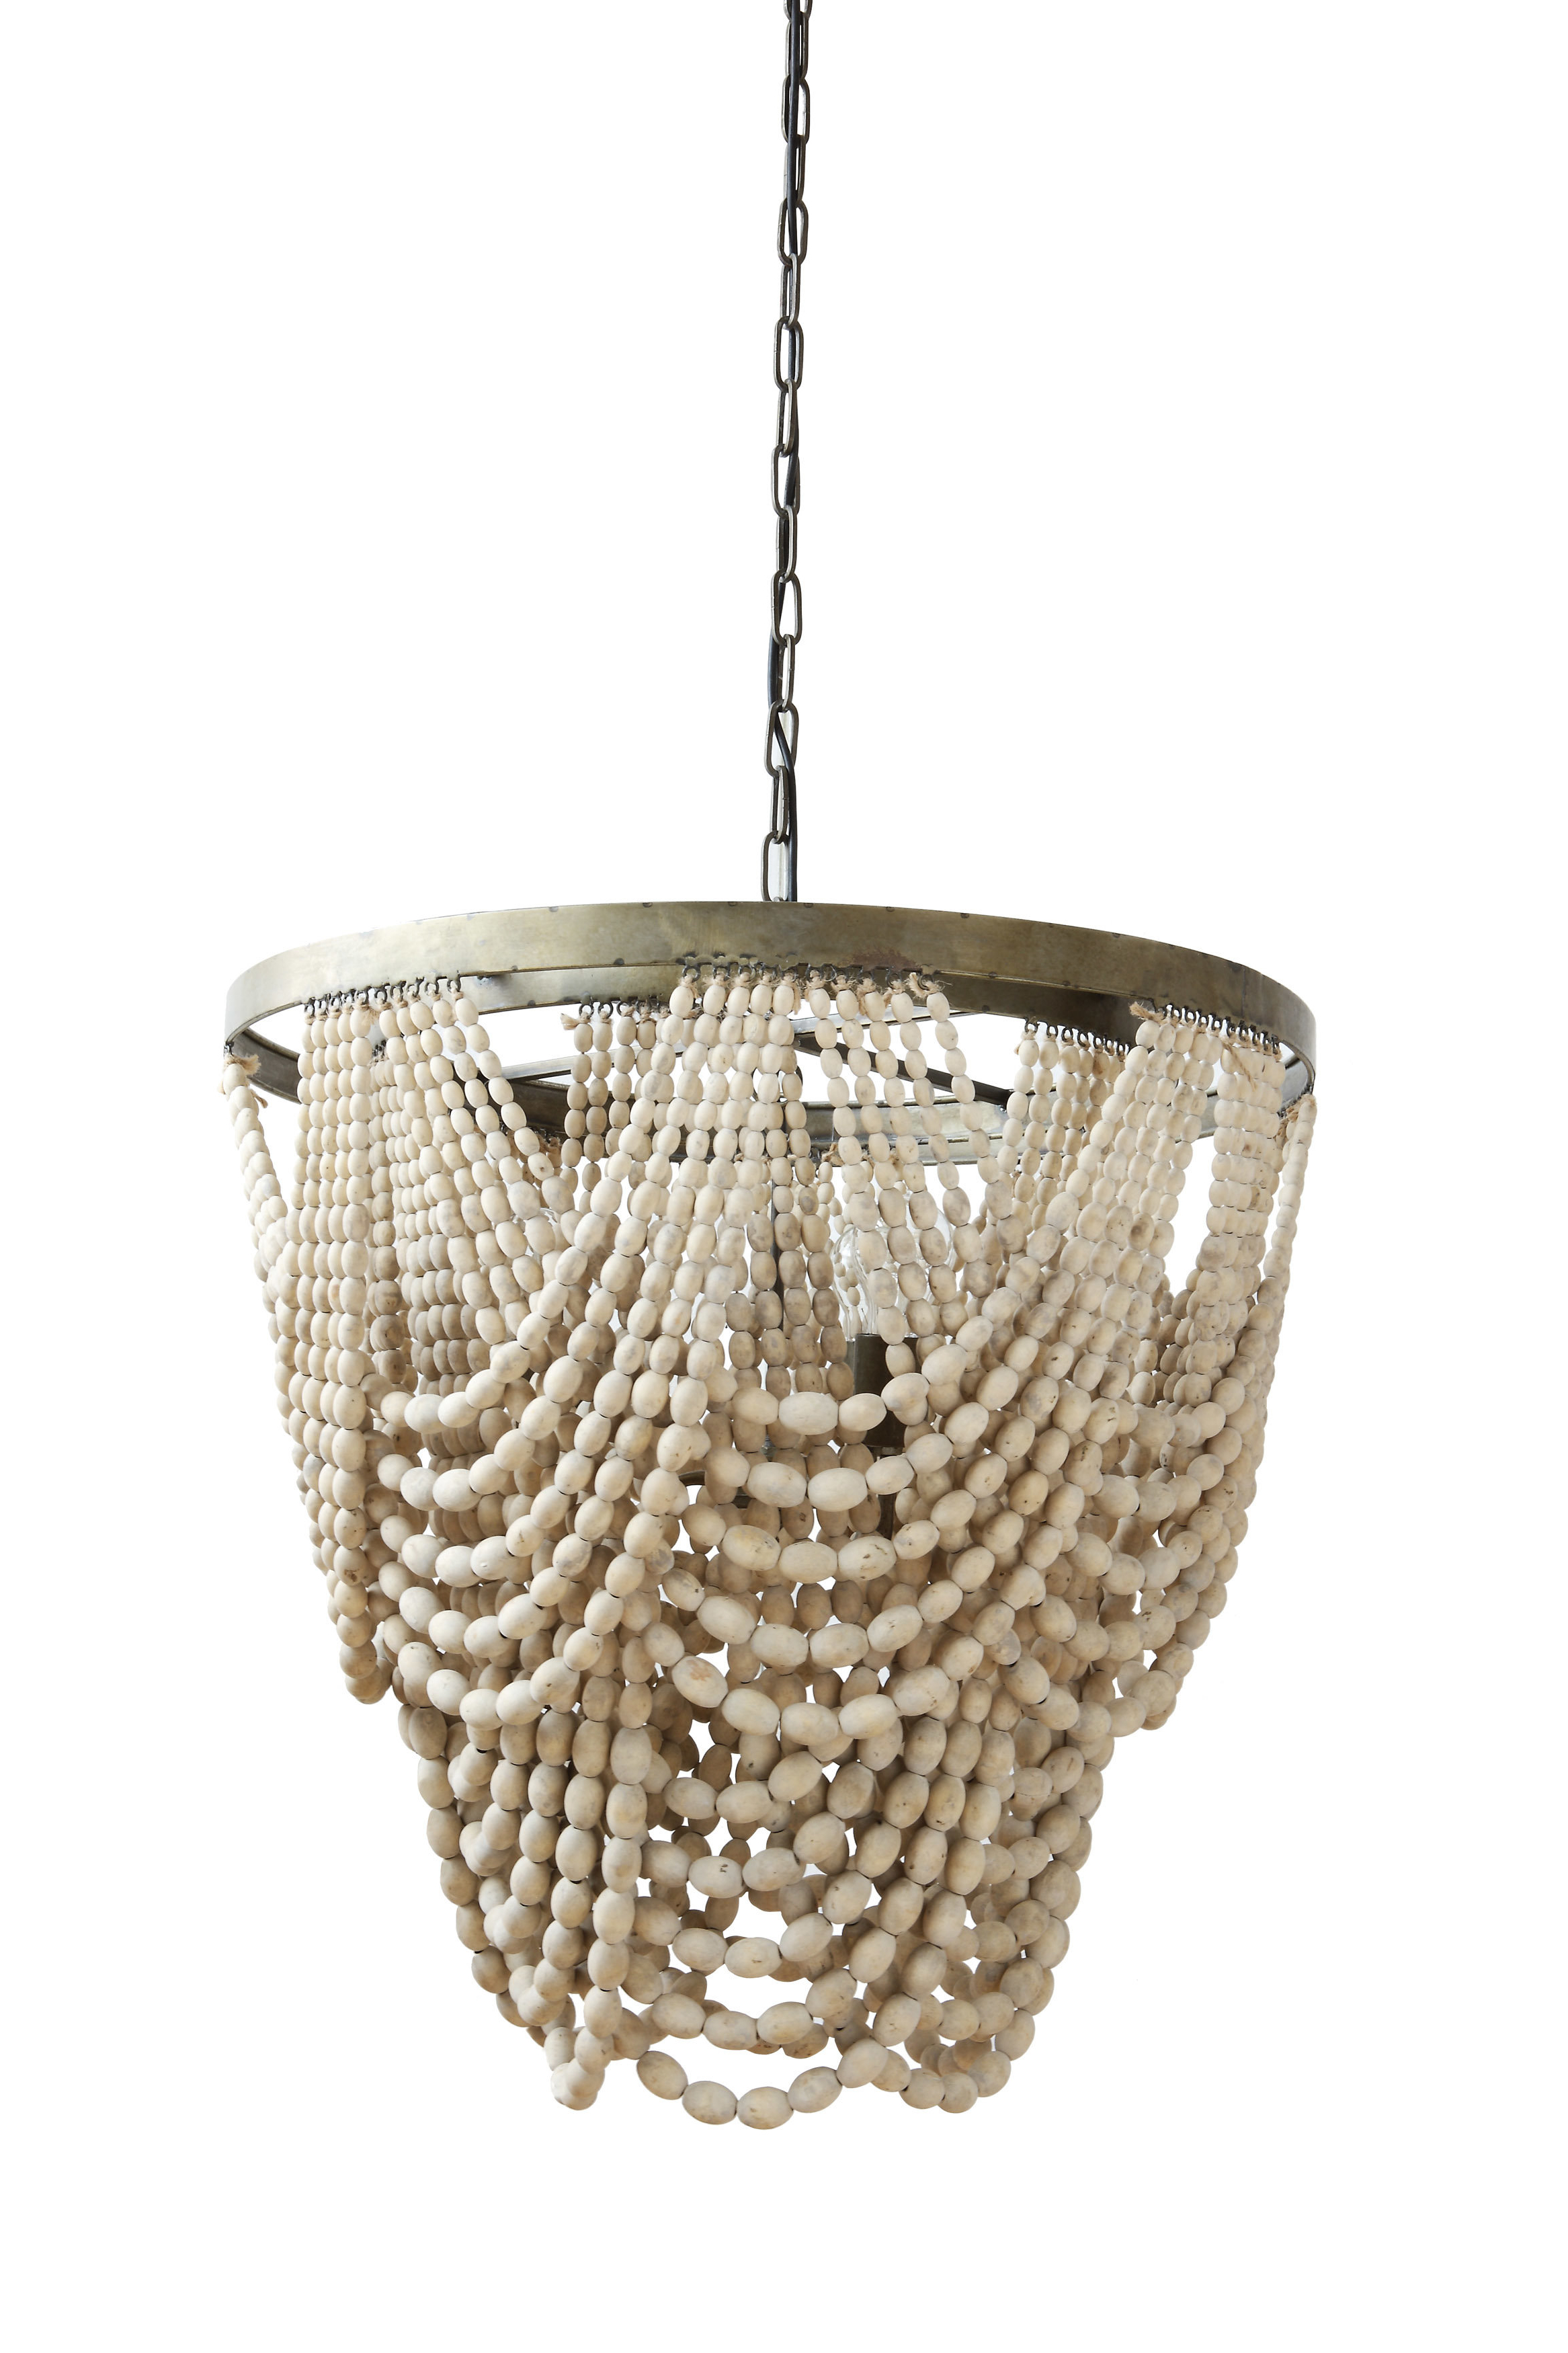 Hatfield 3 Light Novelty Chandelier With Regard To Well Known Bramers 6 Light Novelty Chandeliers (View 14 of 20)